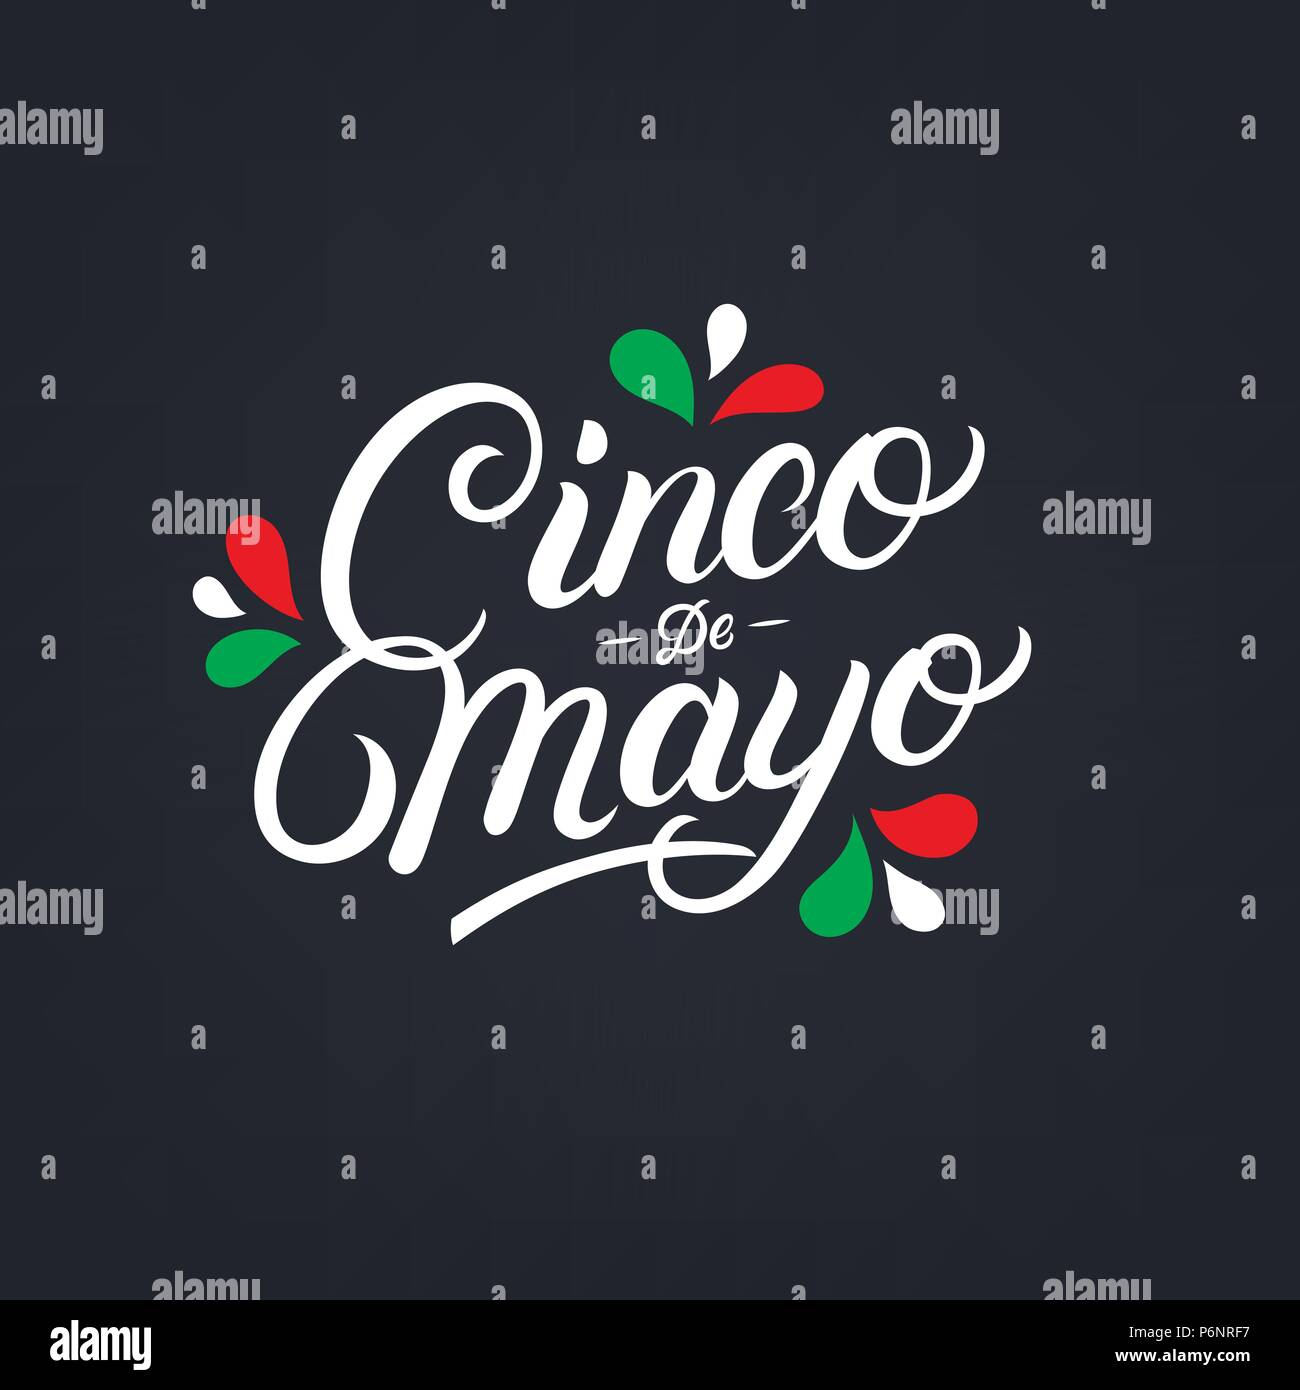 cinco de mayo hand written lettering quote modern brush calligraphy